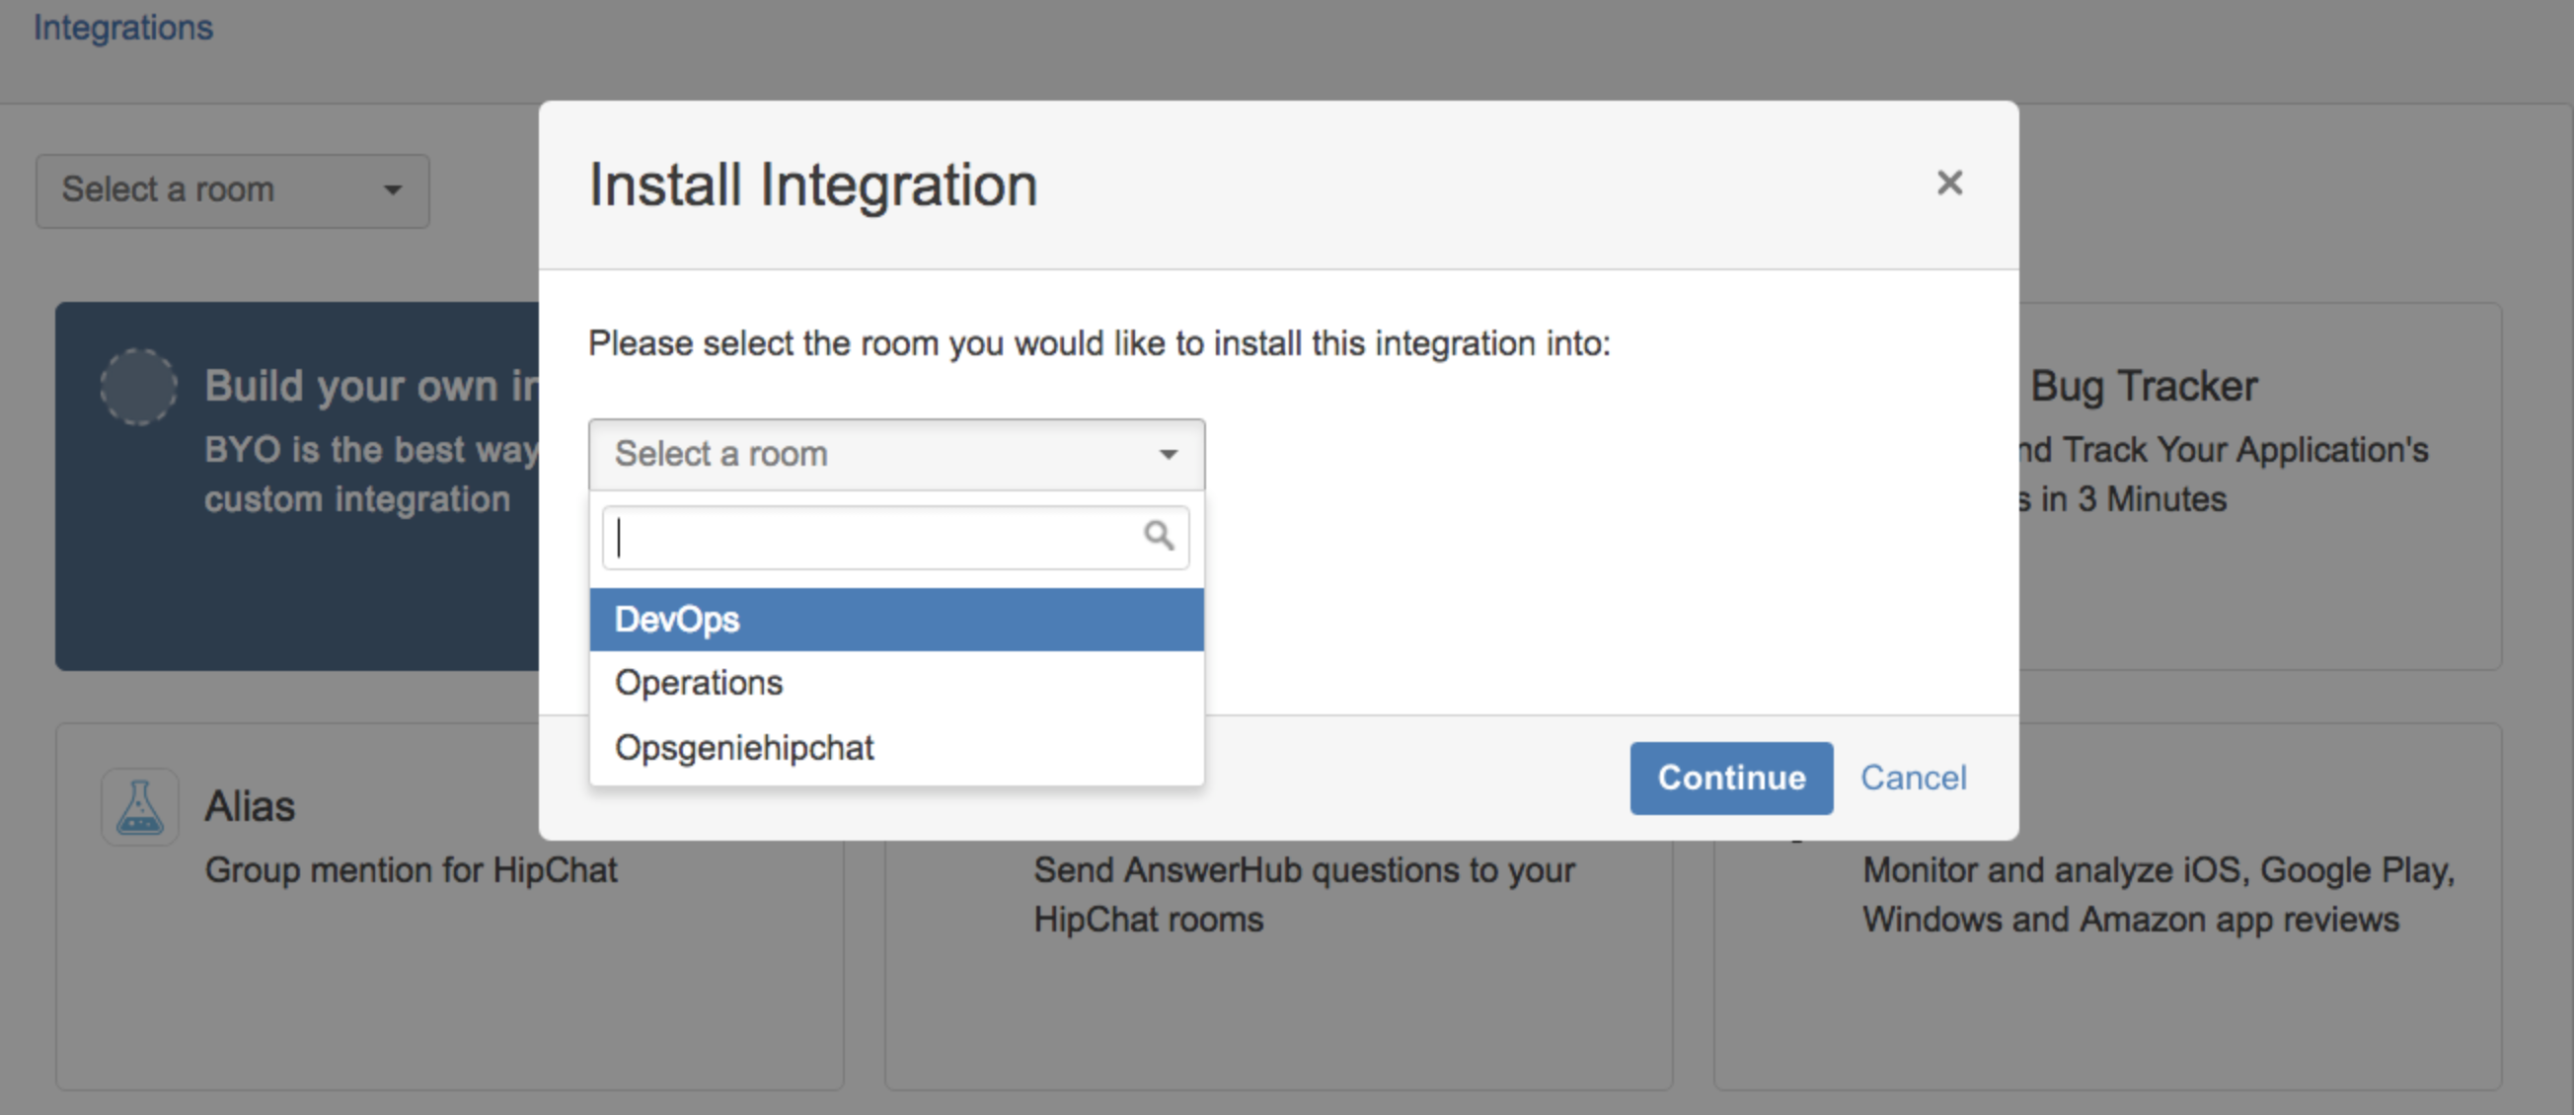 A screenshot of room selection while installing HipChat integration.